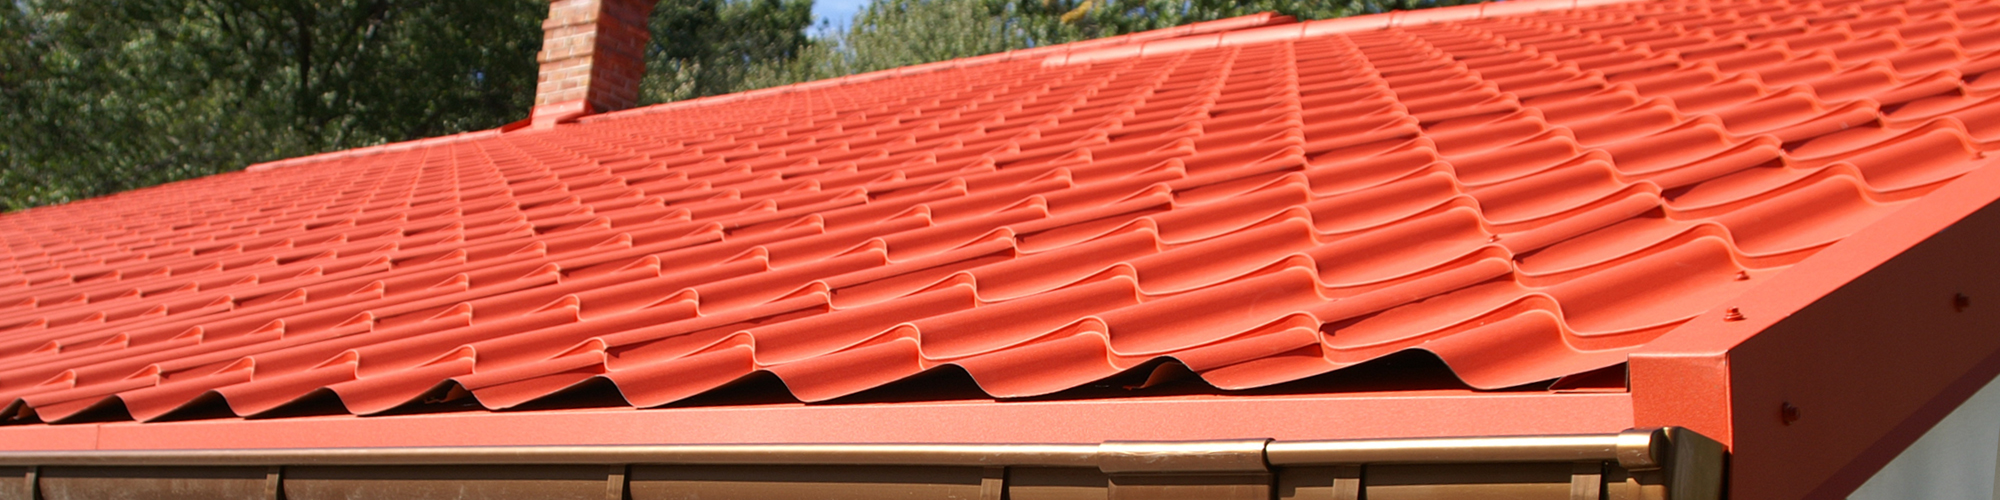 Your source for top-quality roof cleaning in St. Charles County, MO